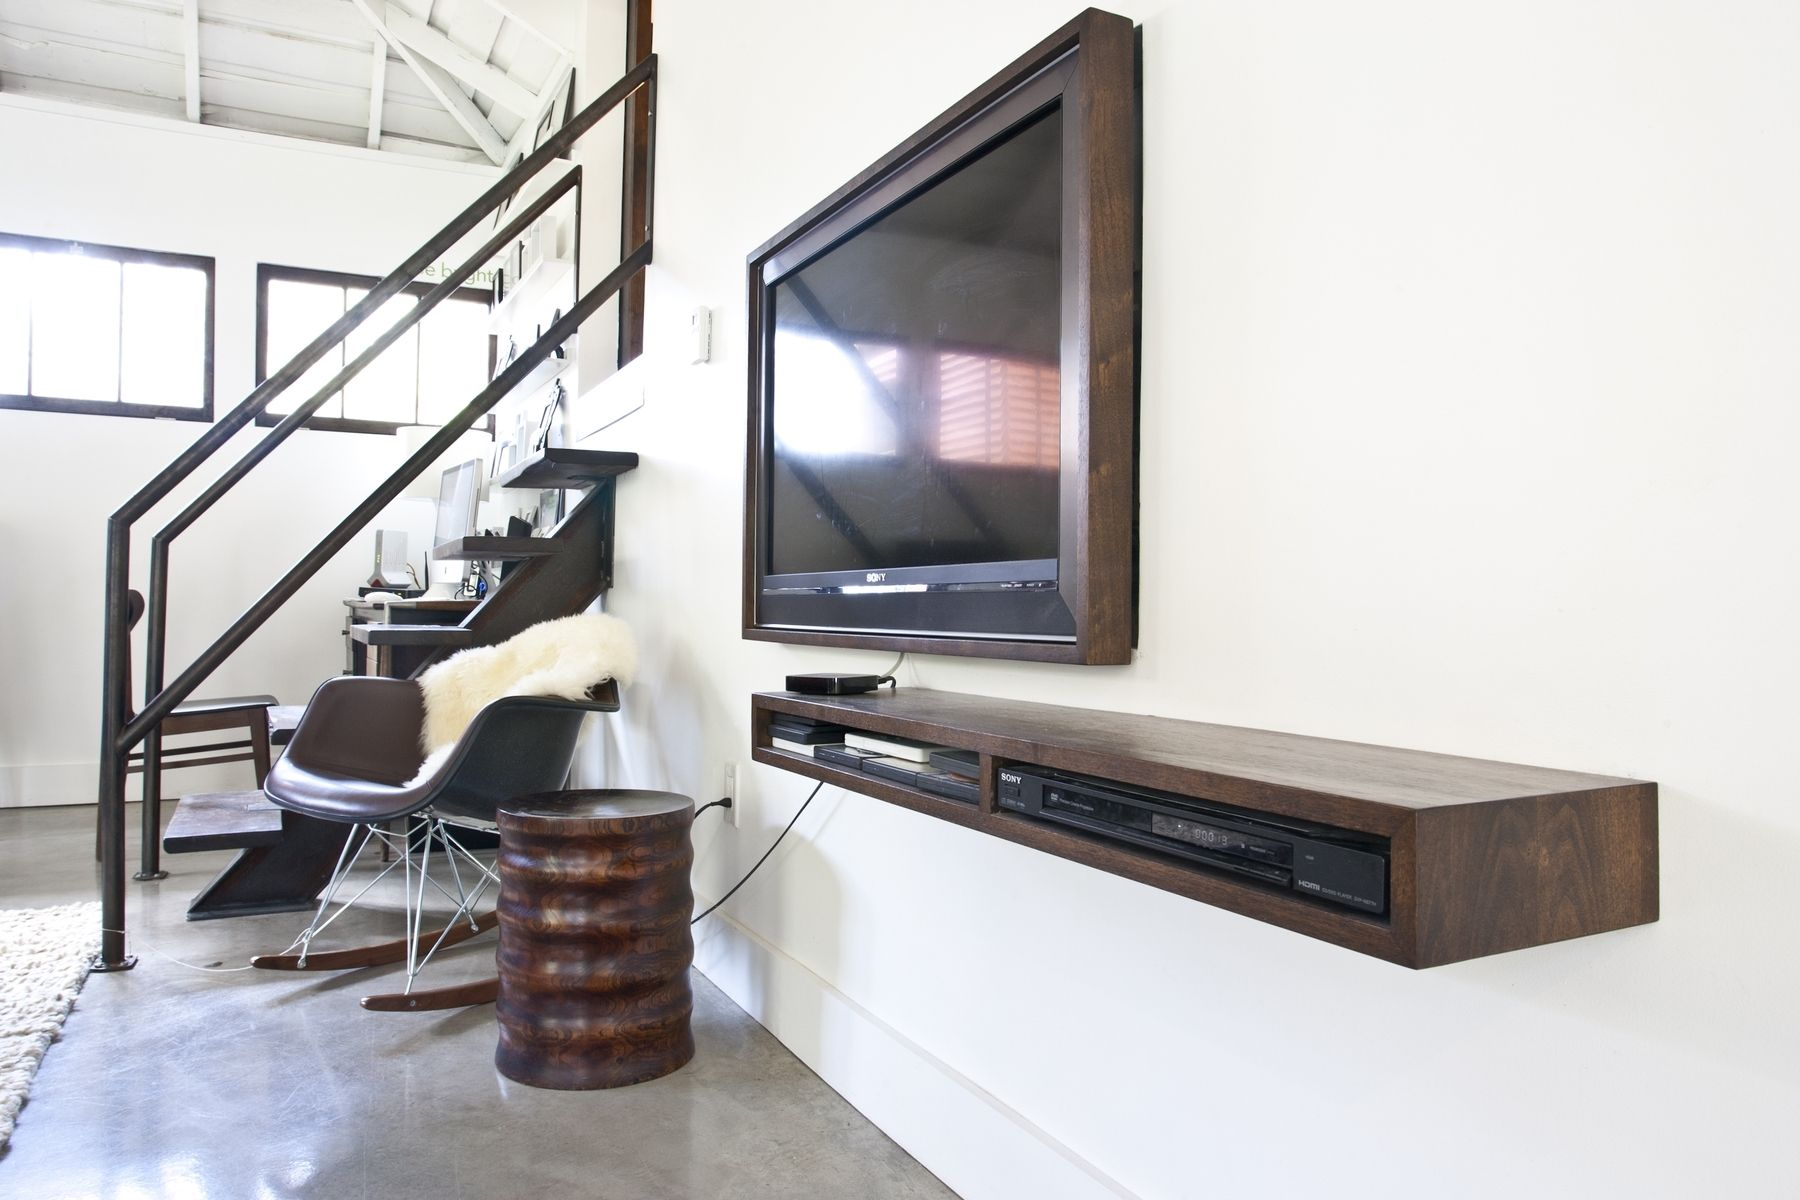 floating media shelf design homesfeed wooden white wall near flat living room with chair and tile floor stairs glass shelves coat hooks shelving solutions adelaide rolling kitchen